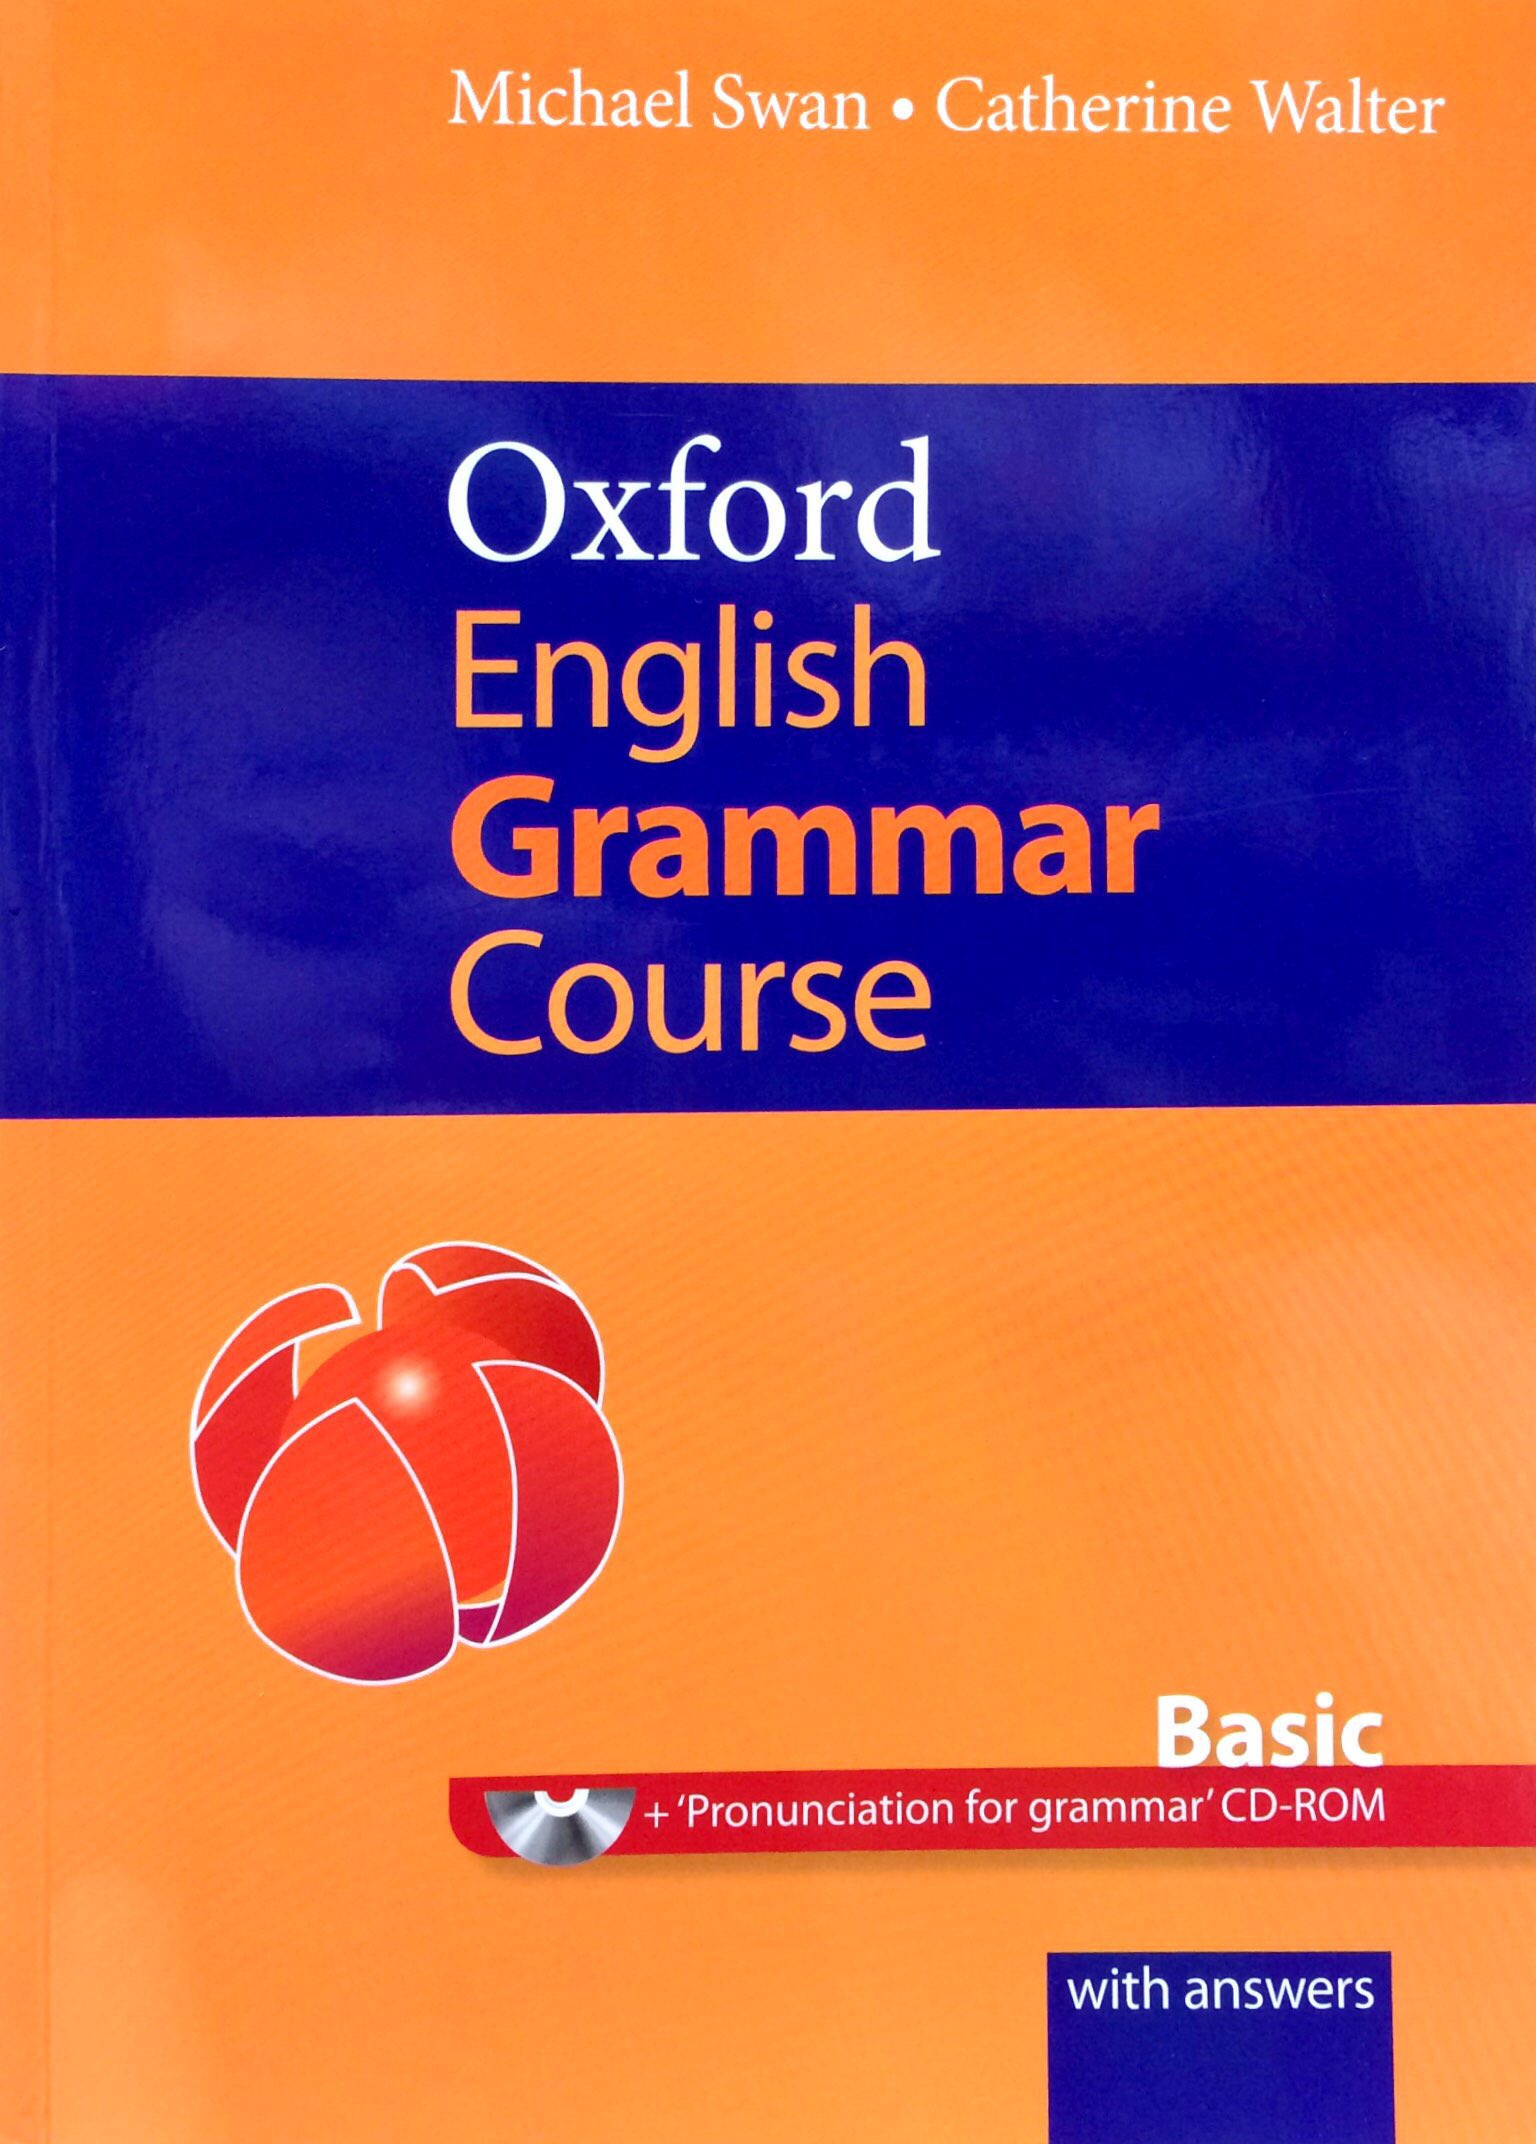 Fahasa - Oxford English Grammar Course Basic with Answers CD-ROM Pack